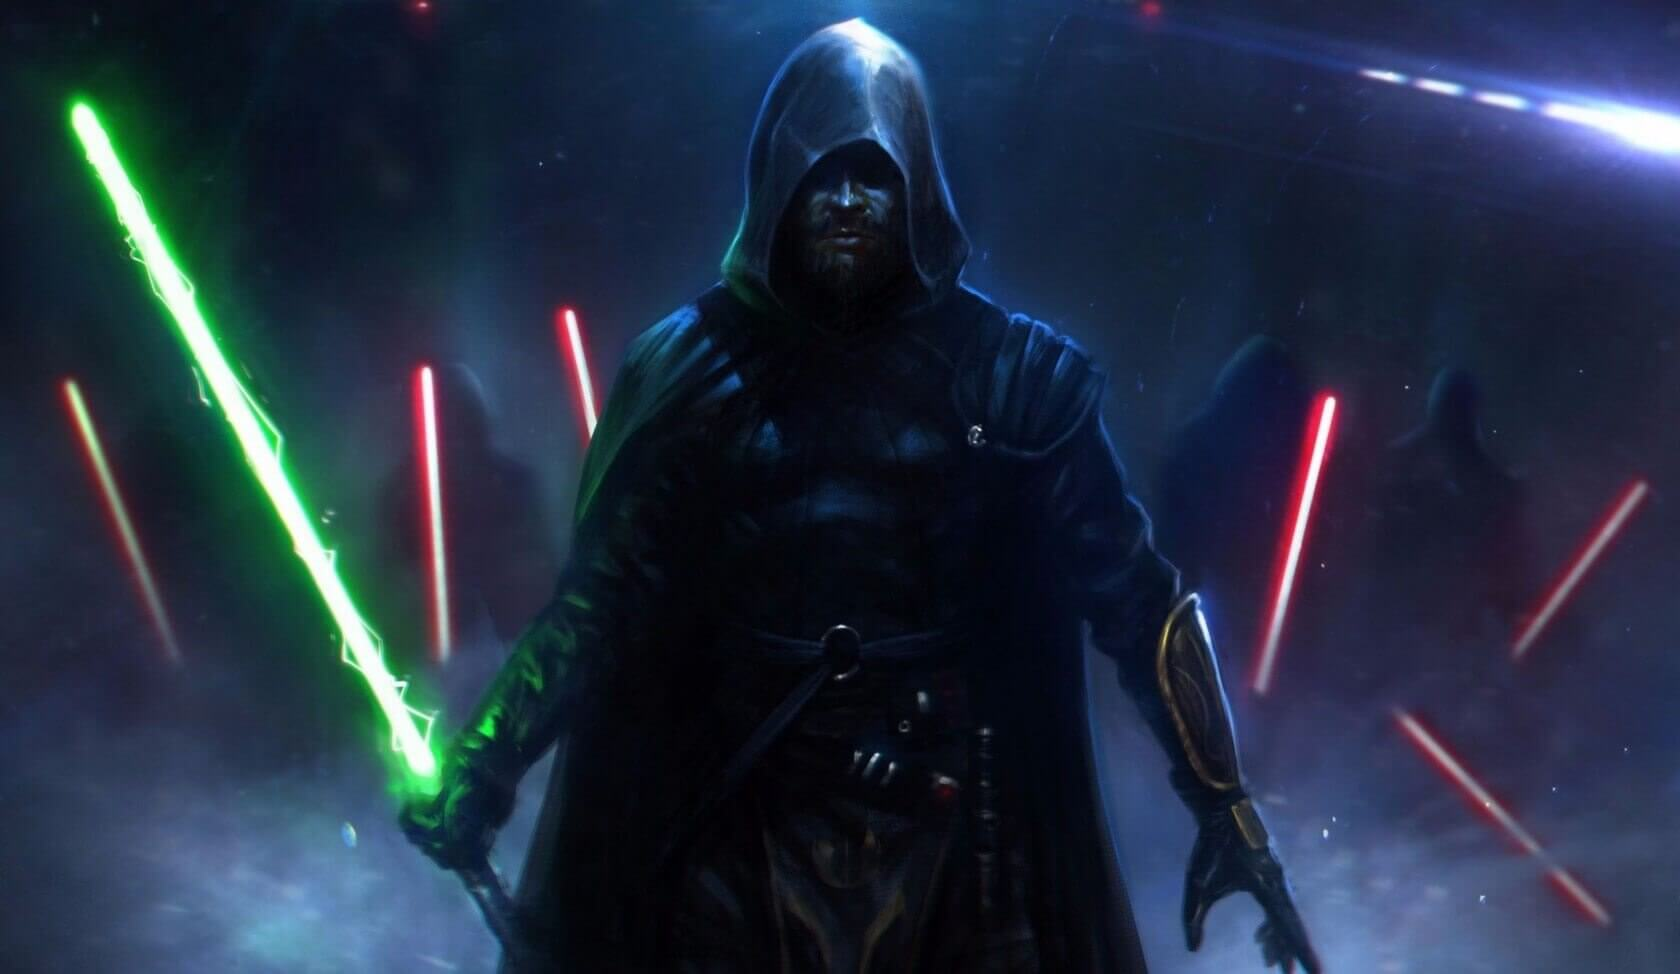 Respawn's 'Star Wars Jedi: Fallen Order' will be unveiled on April 13